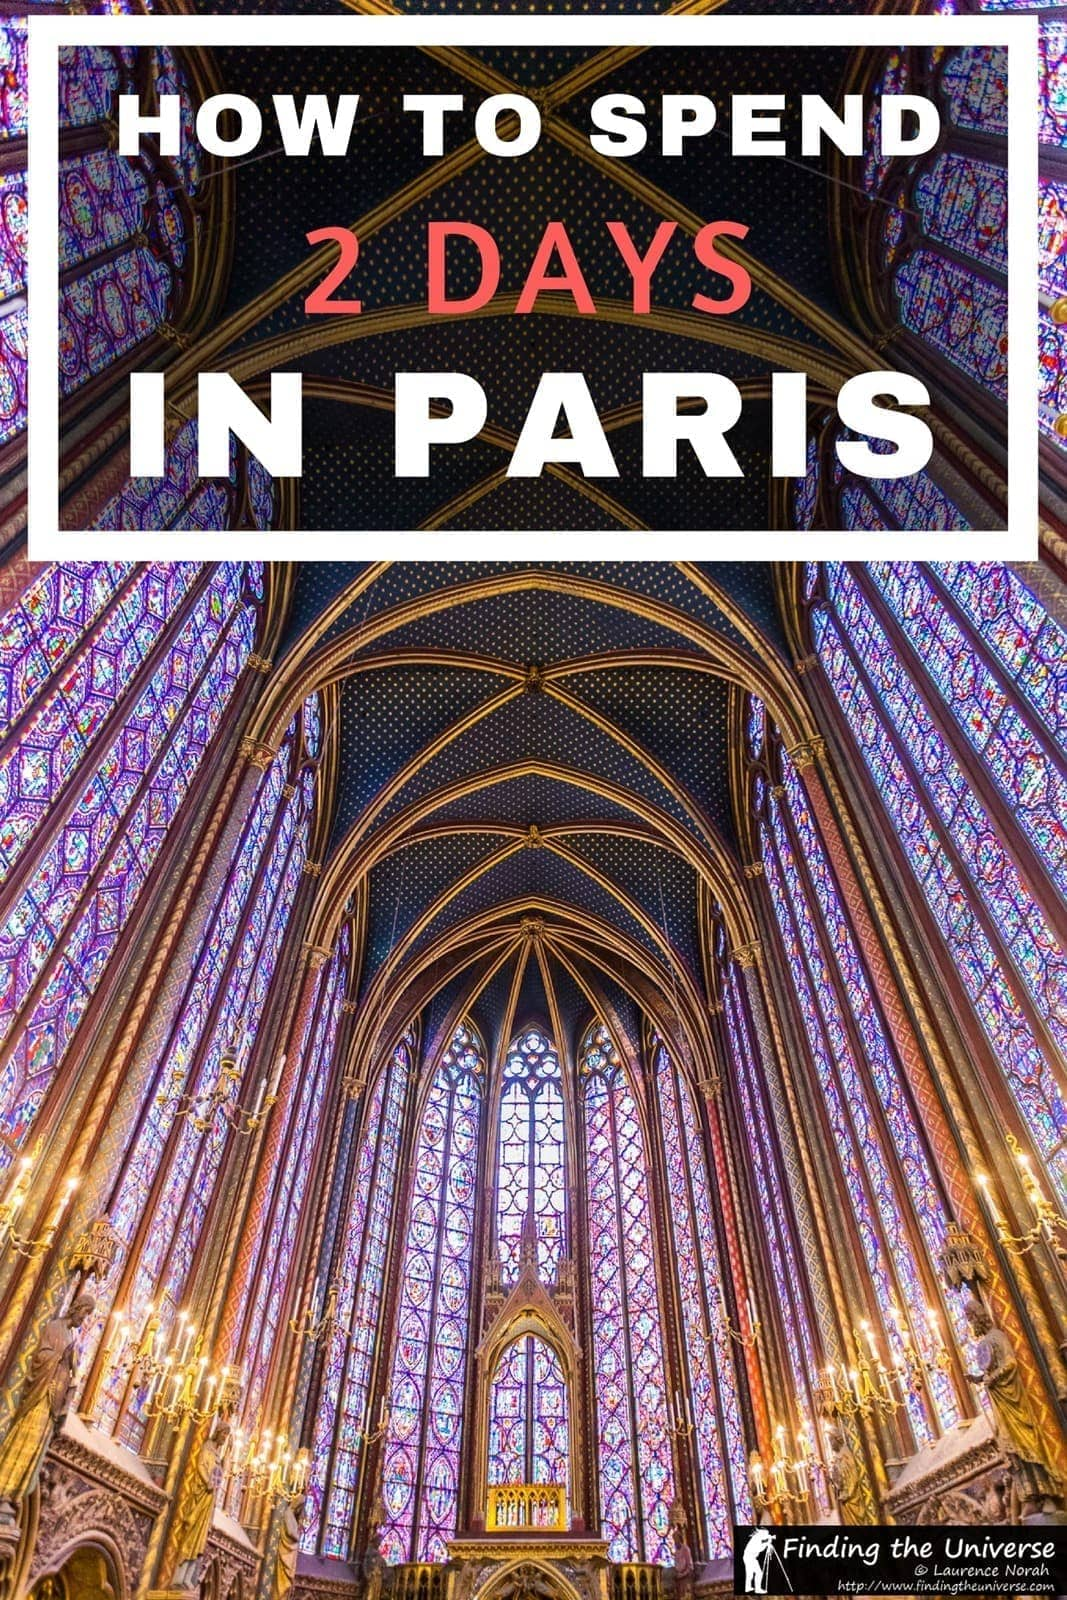 2 days in Paris - everything you need to know for the perfect visit to Paris, including what to see, how to save money, tips for your stay and more!